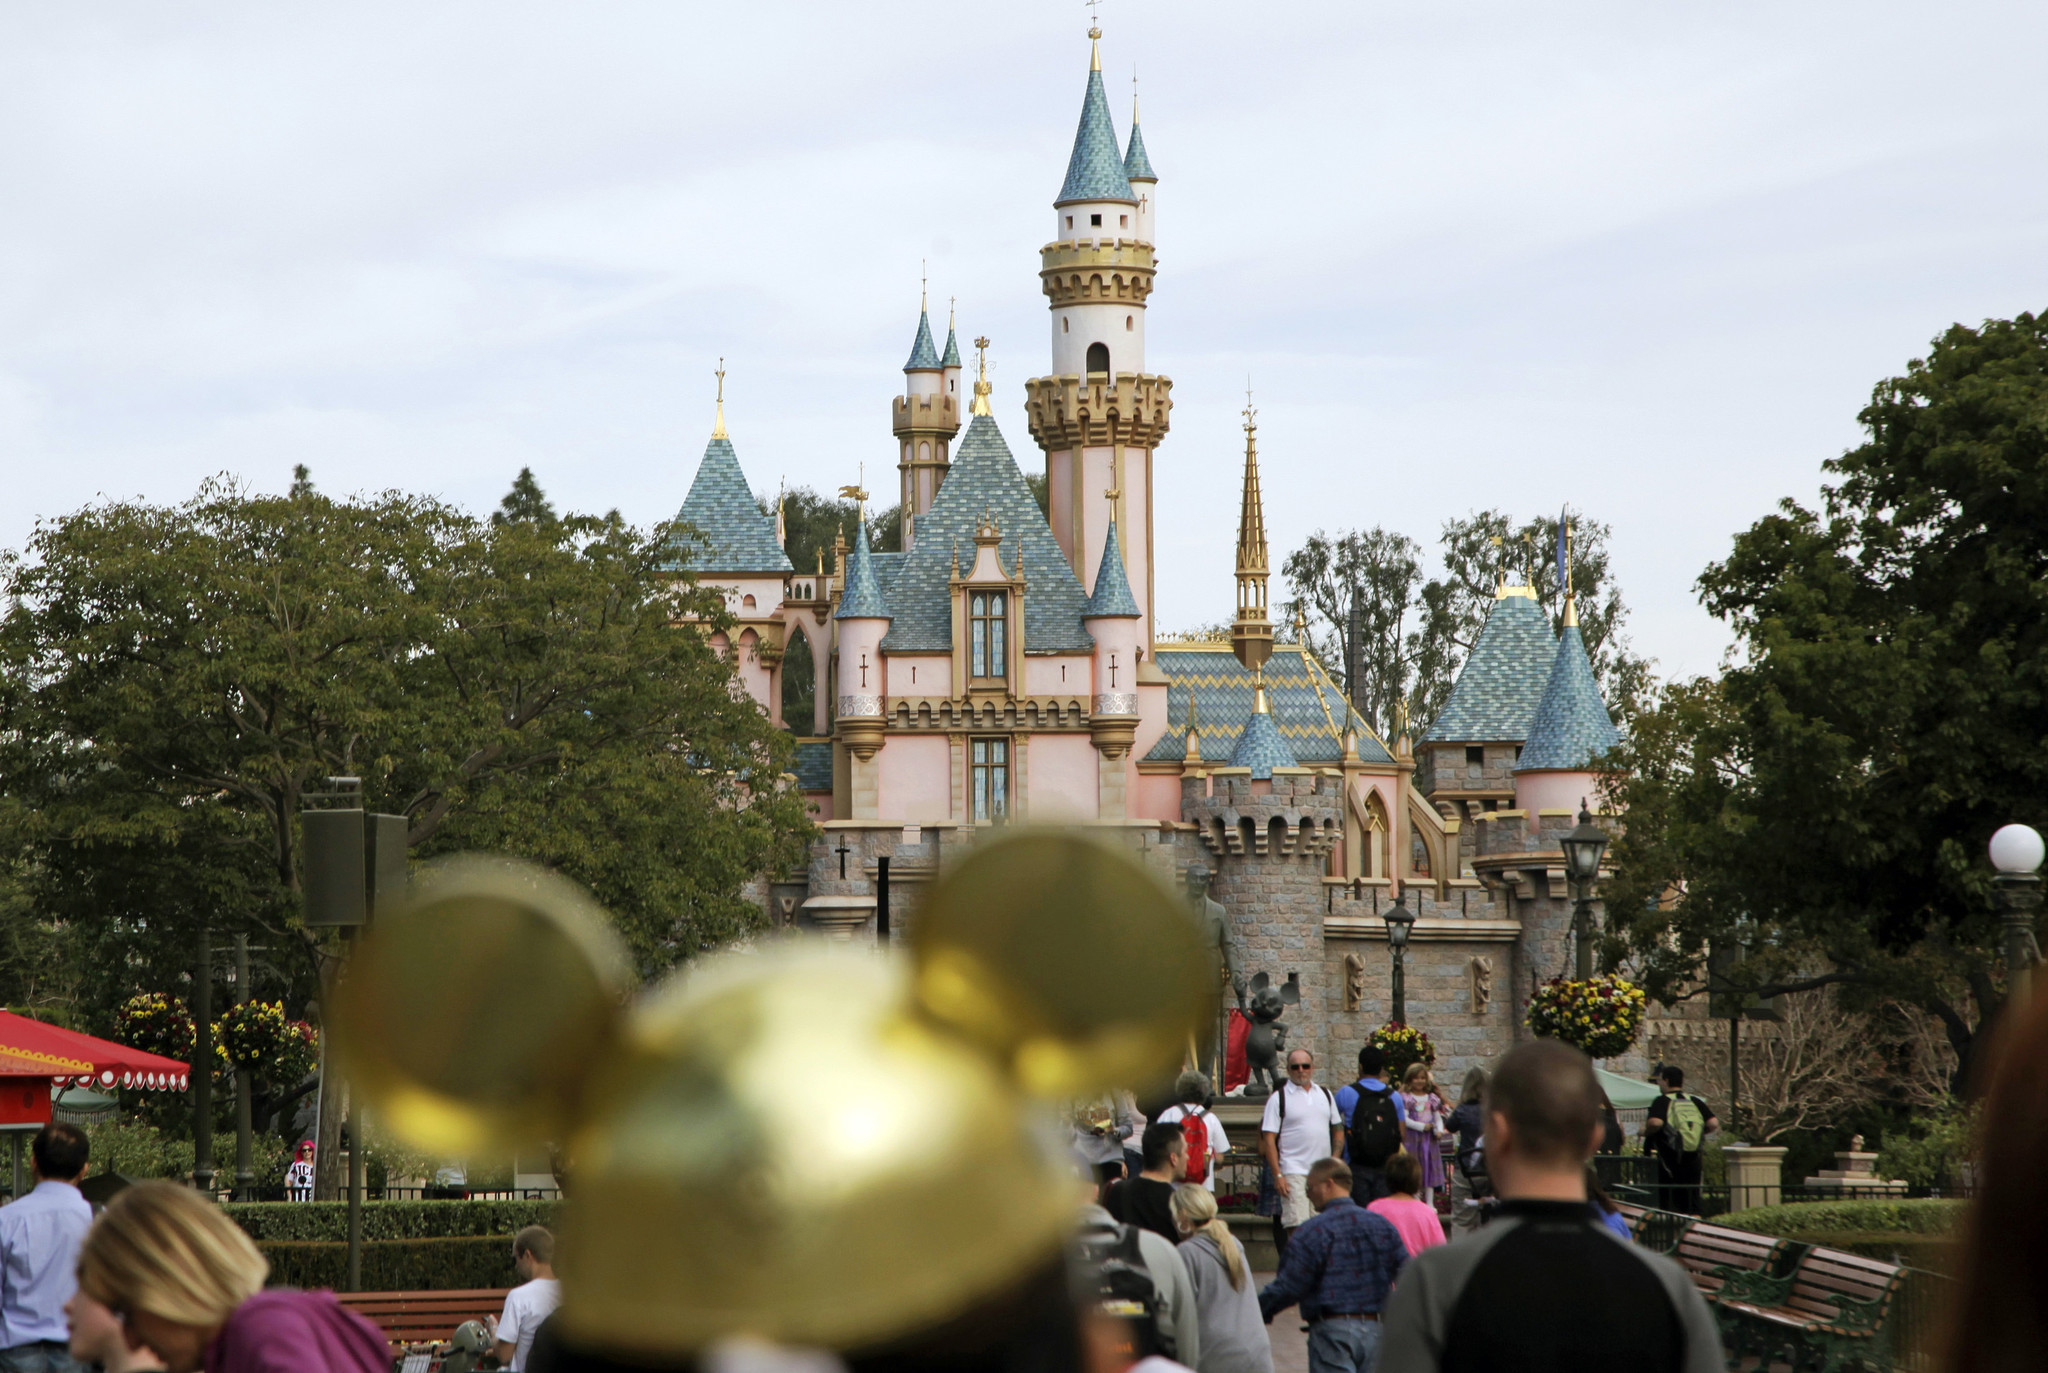 Sword in stone at Disneyland pulled out by 'pretty buff dude'